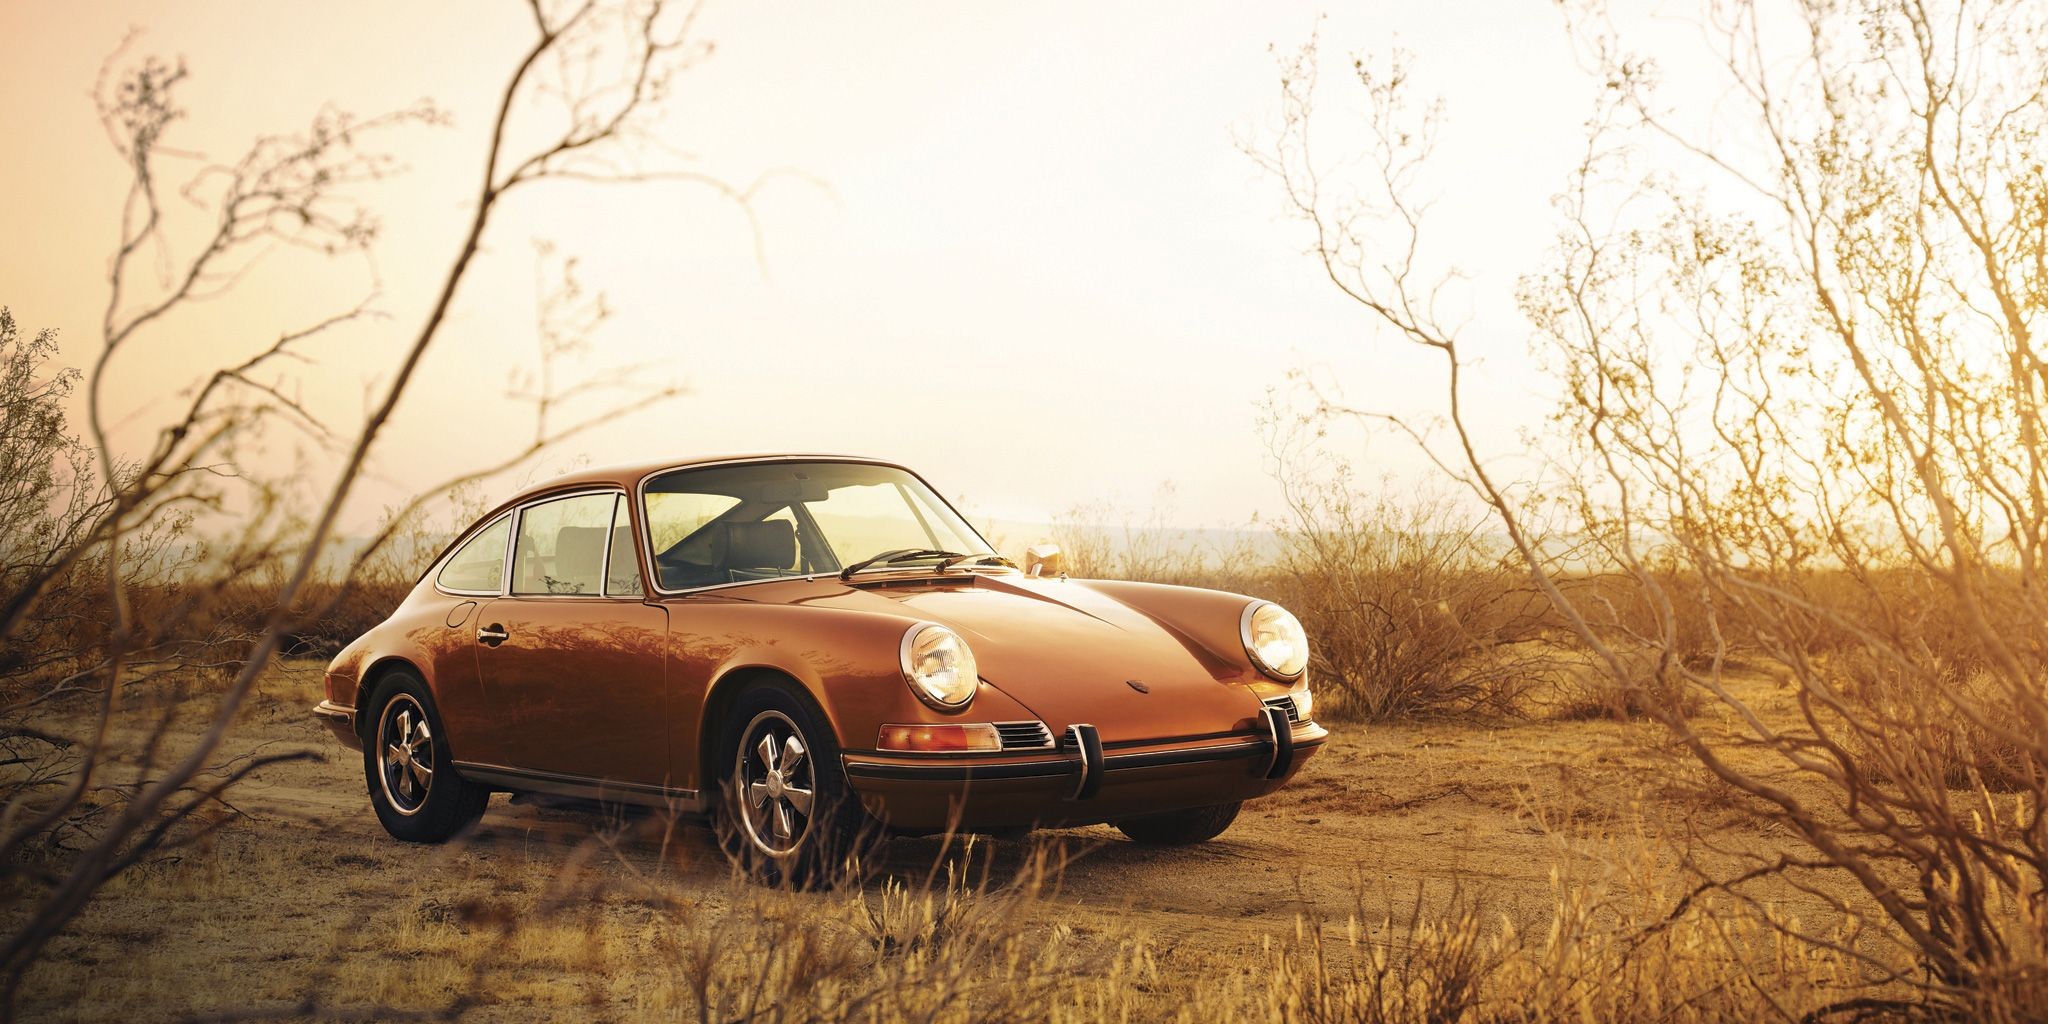 Porsche Leasing is simpler than ever with our Simple Lease Read